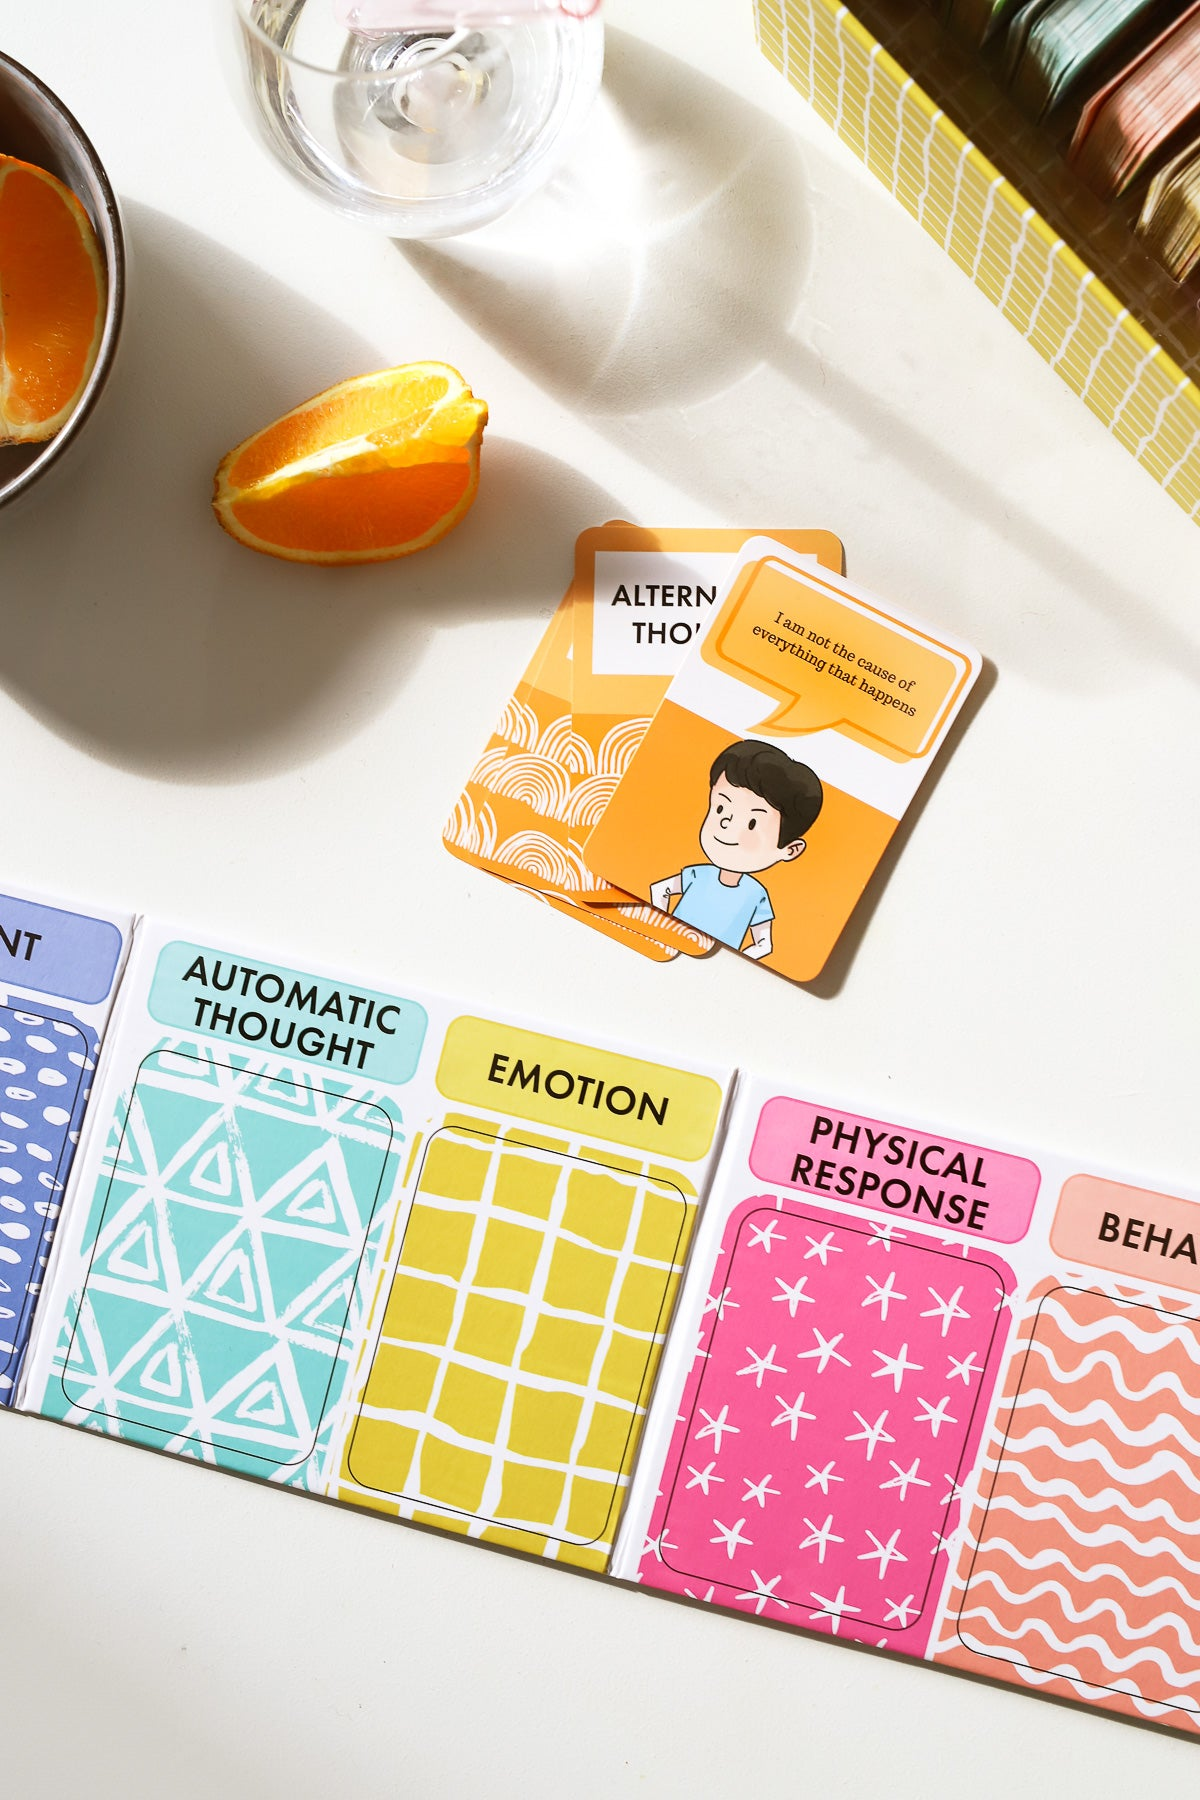 The ABC's of CBT card game for improving coping and emotional development in kids with teachers, parents, and counsellors